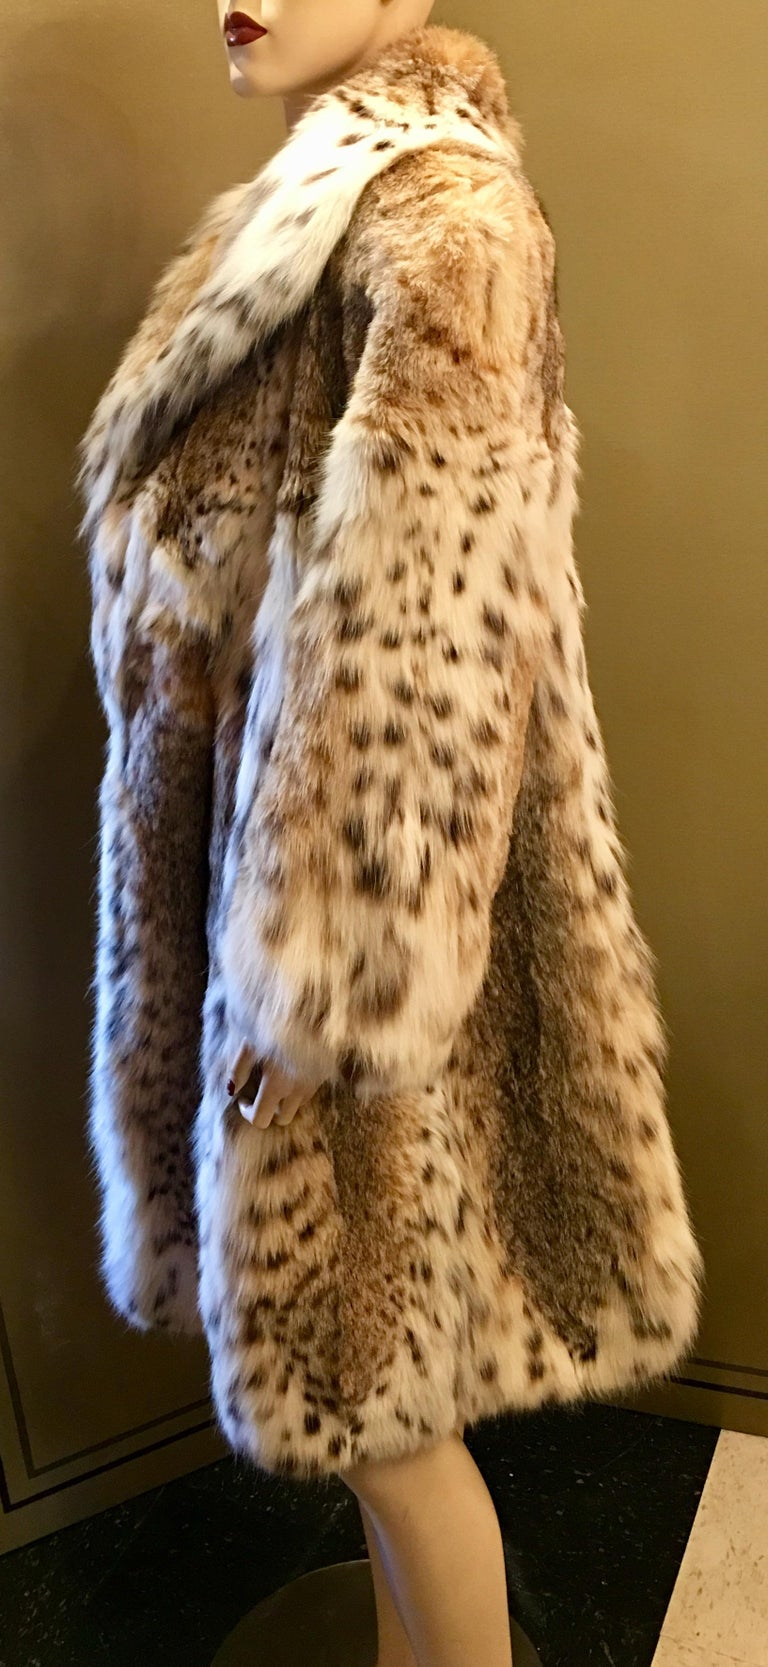 Women's Sexy Natural Spotted Lynx 3 Quarter Length Ultra Soft High Fashion Fur Coat For Sale